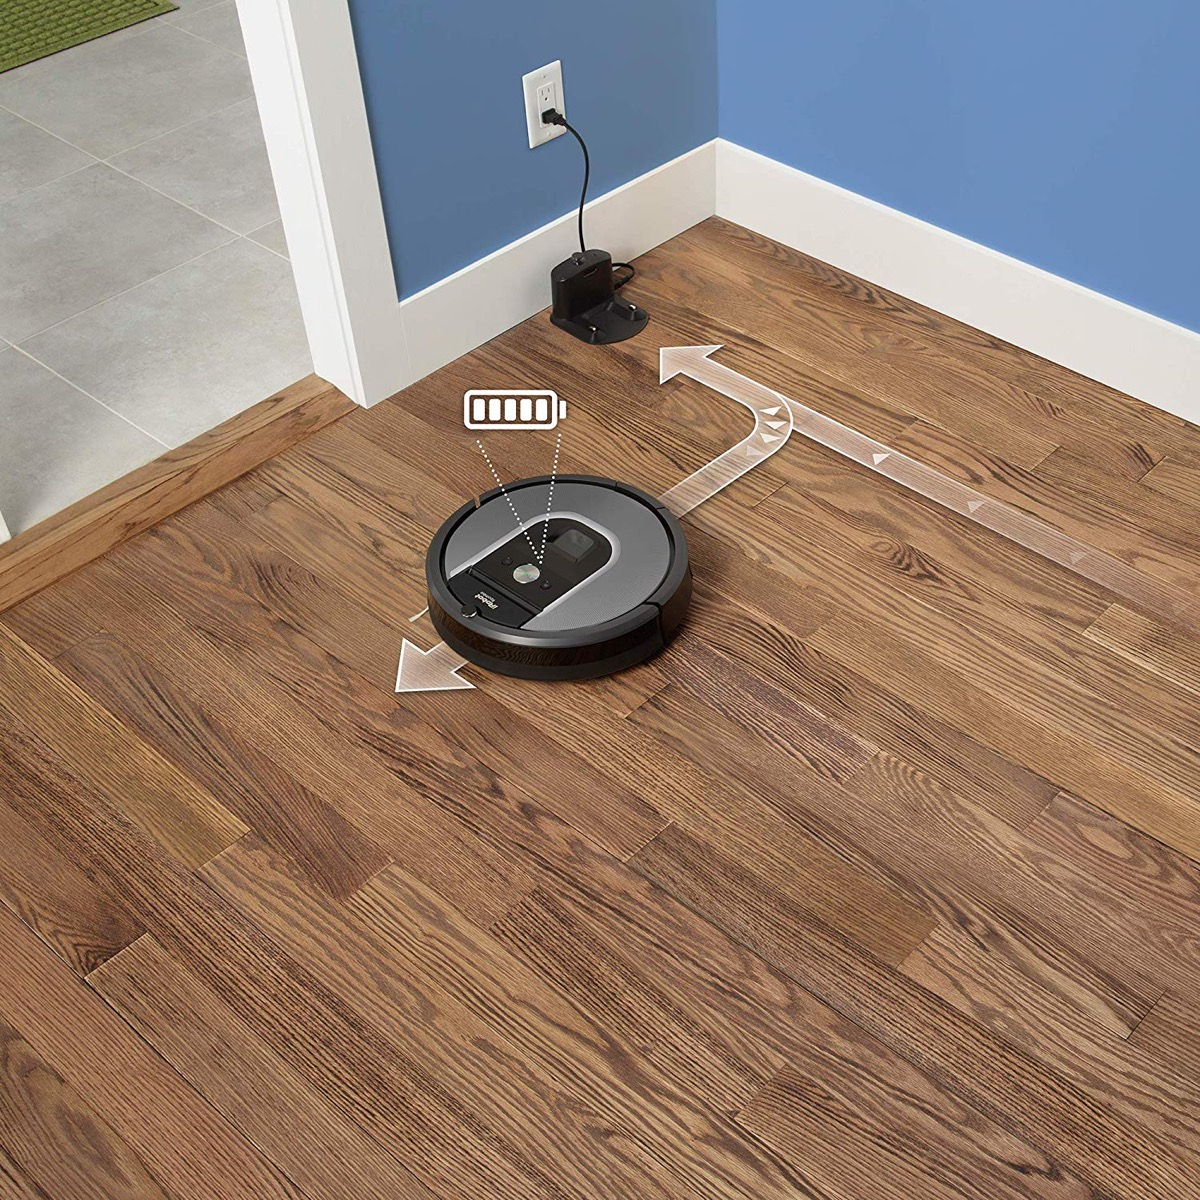 roomba appliances with cult followings